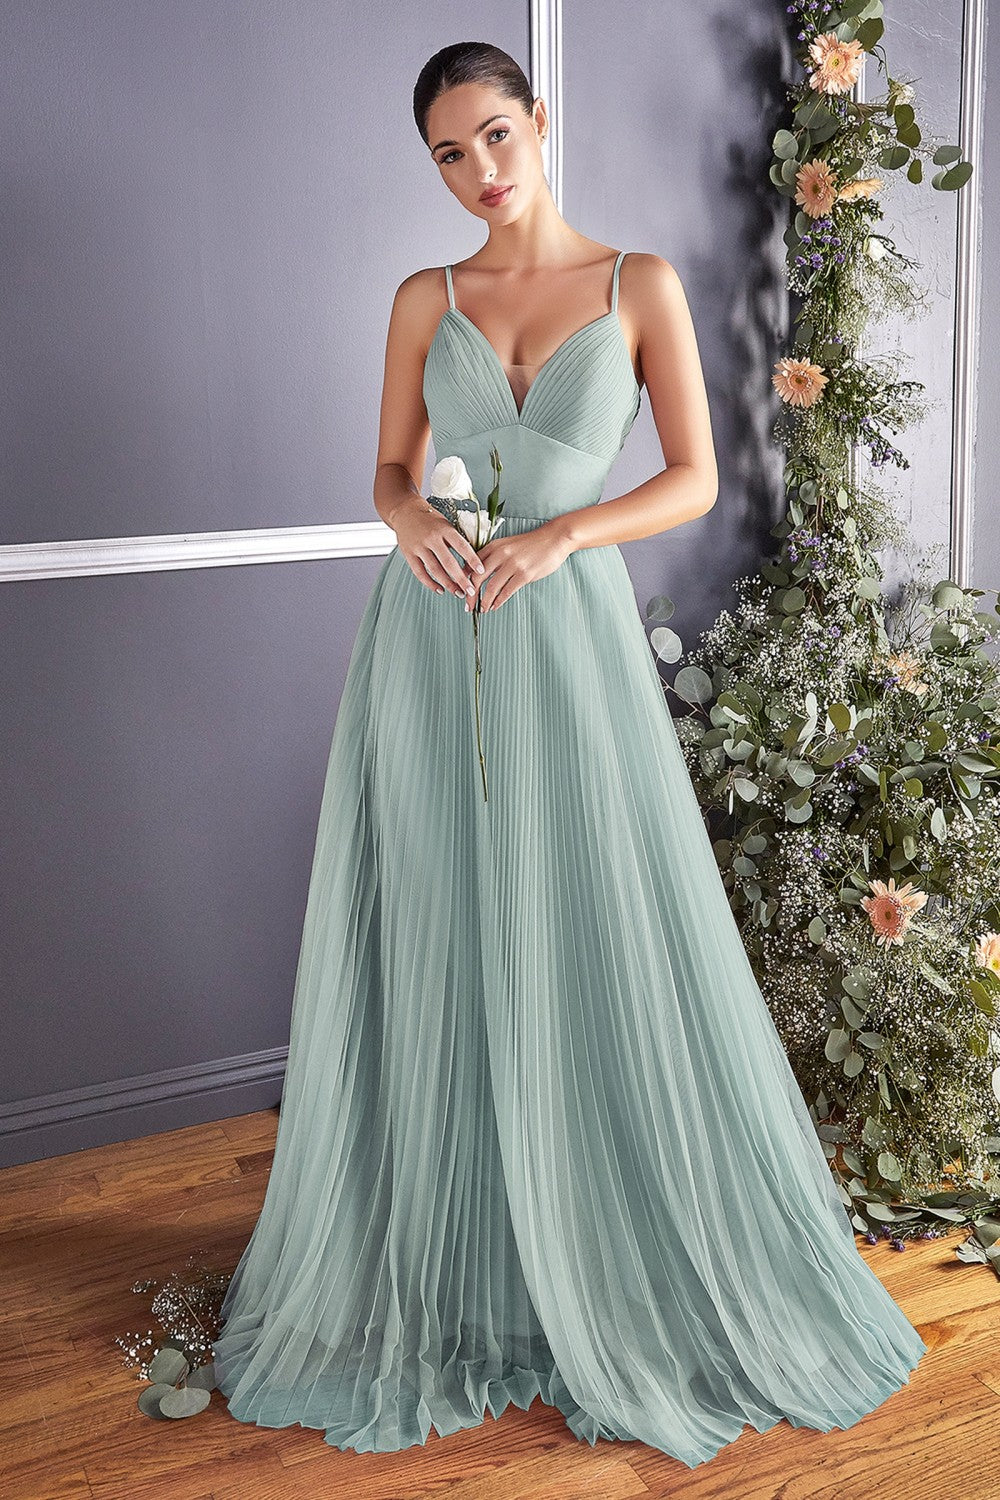 Dahlia Bridesmaid Full Tulle Skirt in Sage Green C184KR-SageGreen   SAMPLE IN STORE